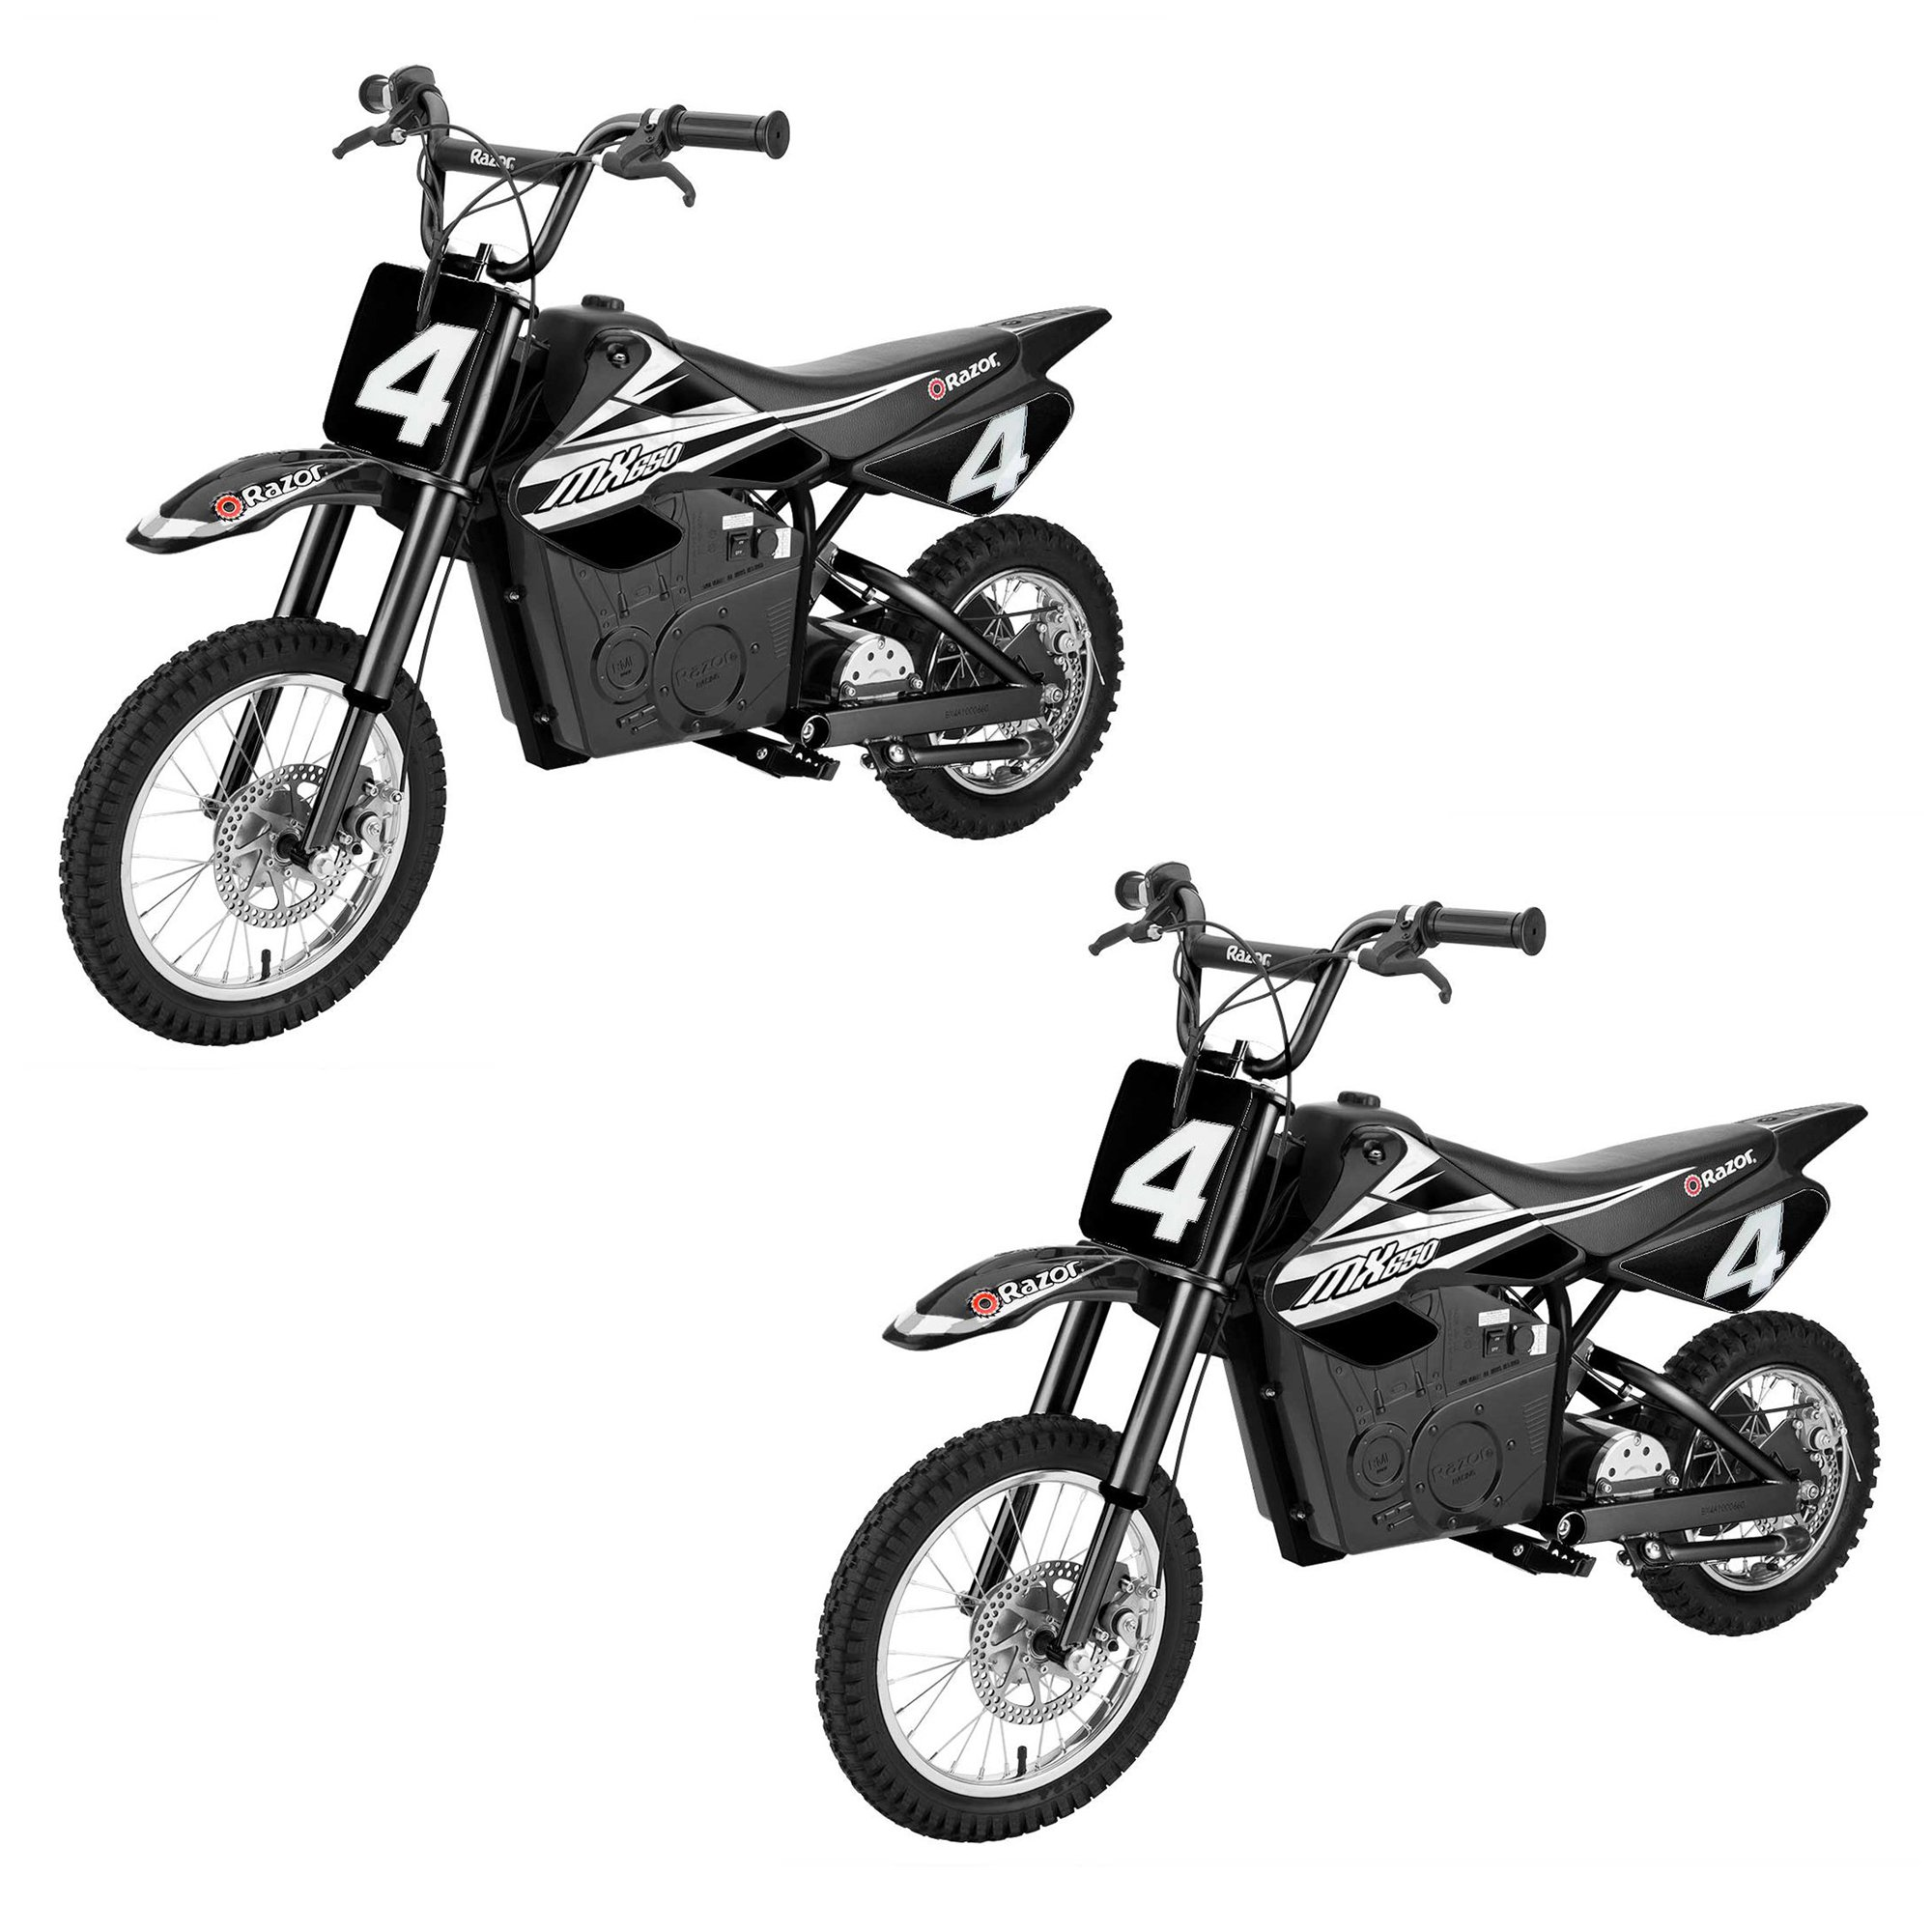 Razor MX650 Steel Electric Dirt Rocket Motor Bike for Teens 16+, Black (2 Pack)